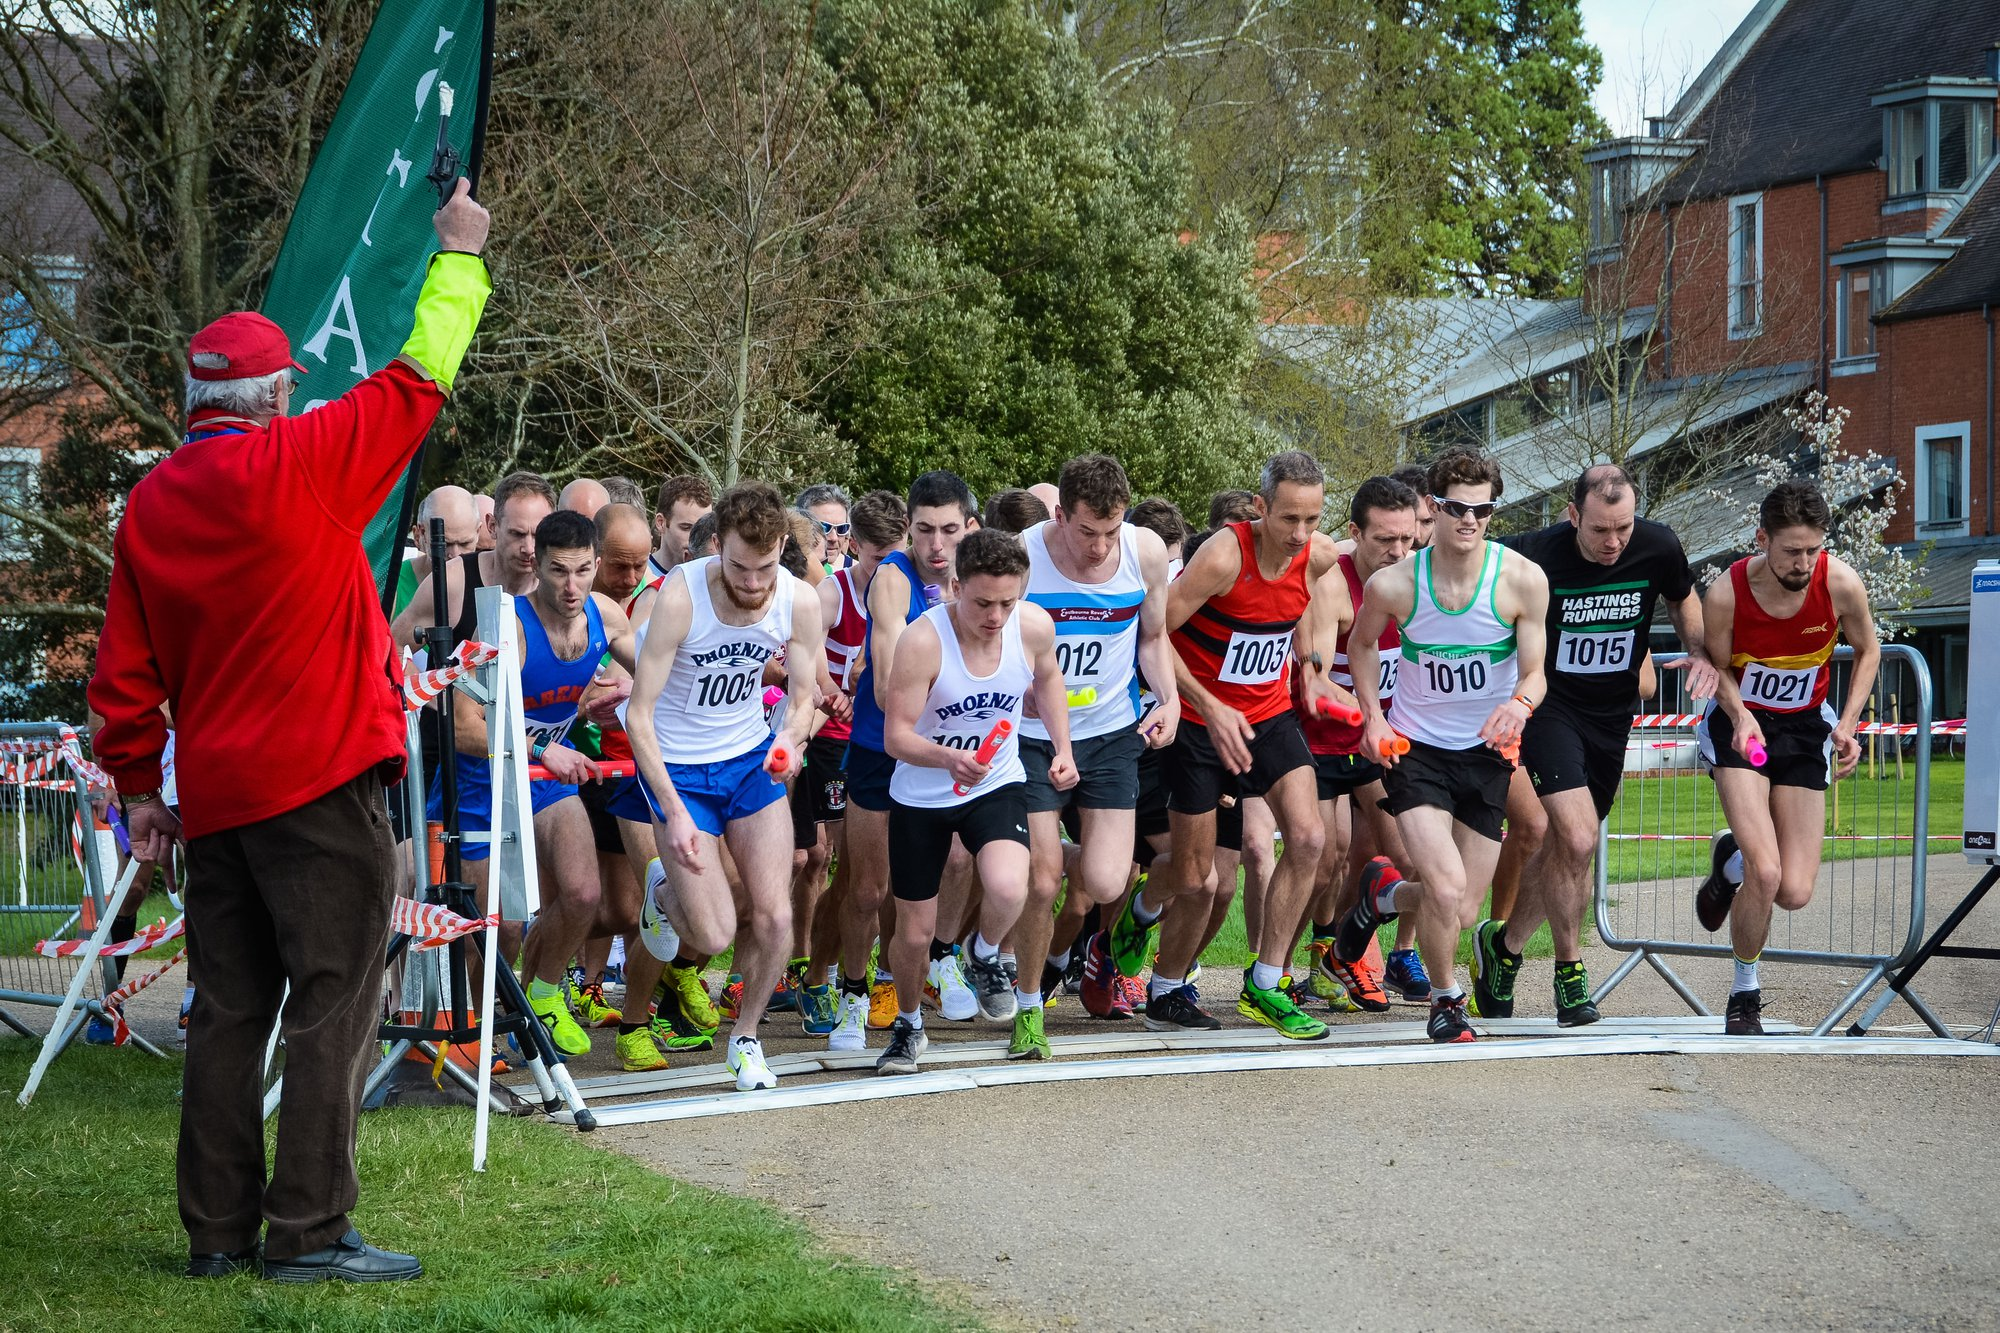 Sussex Road Relay Championship